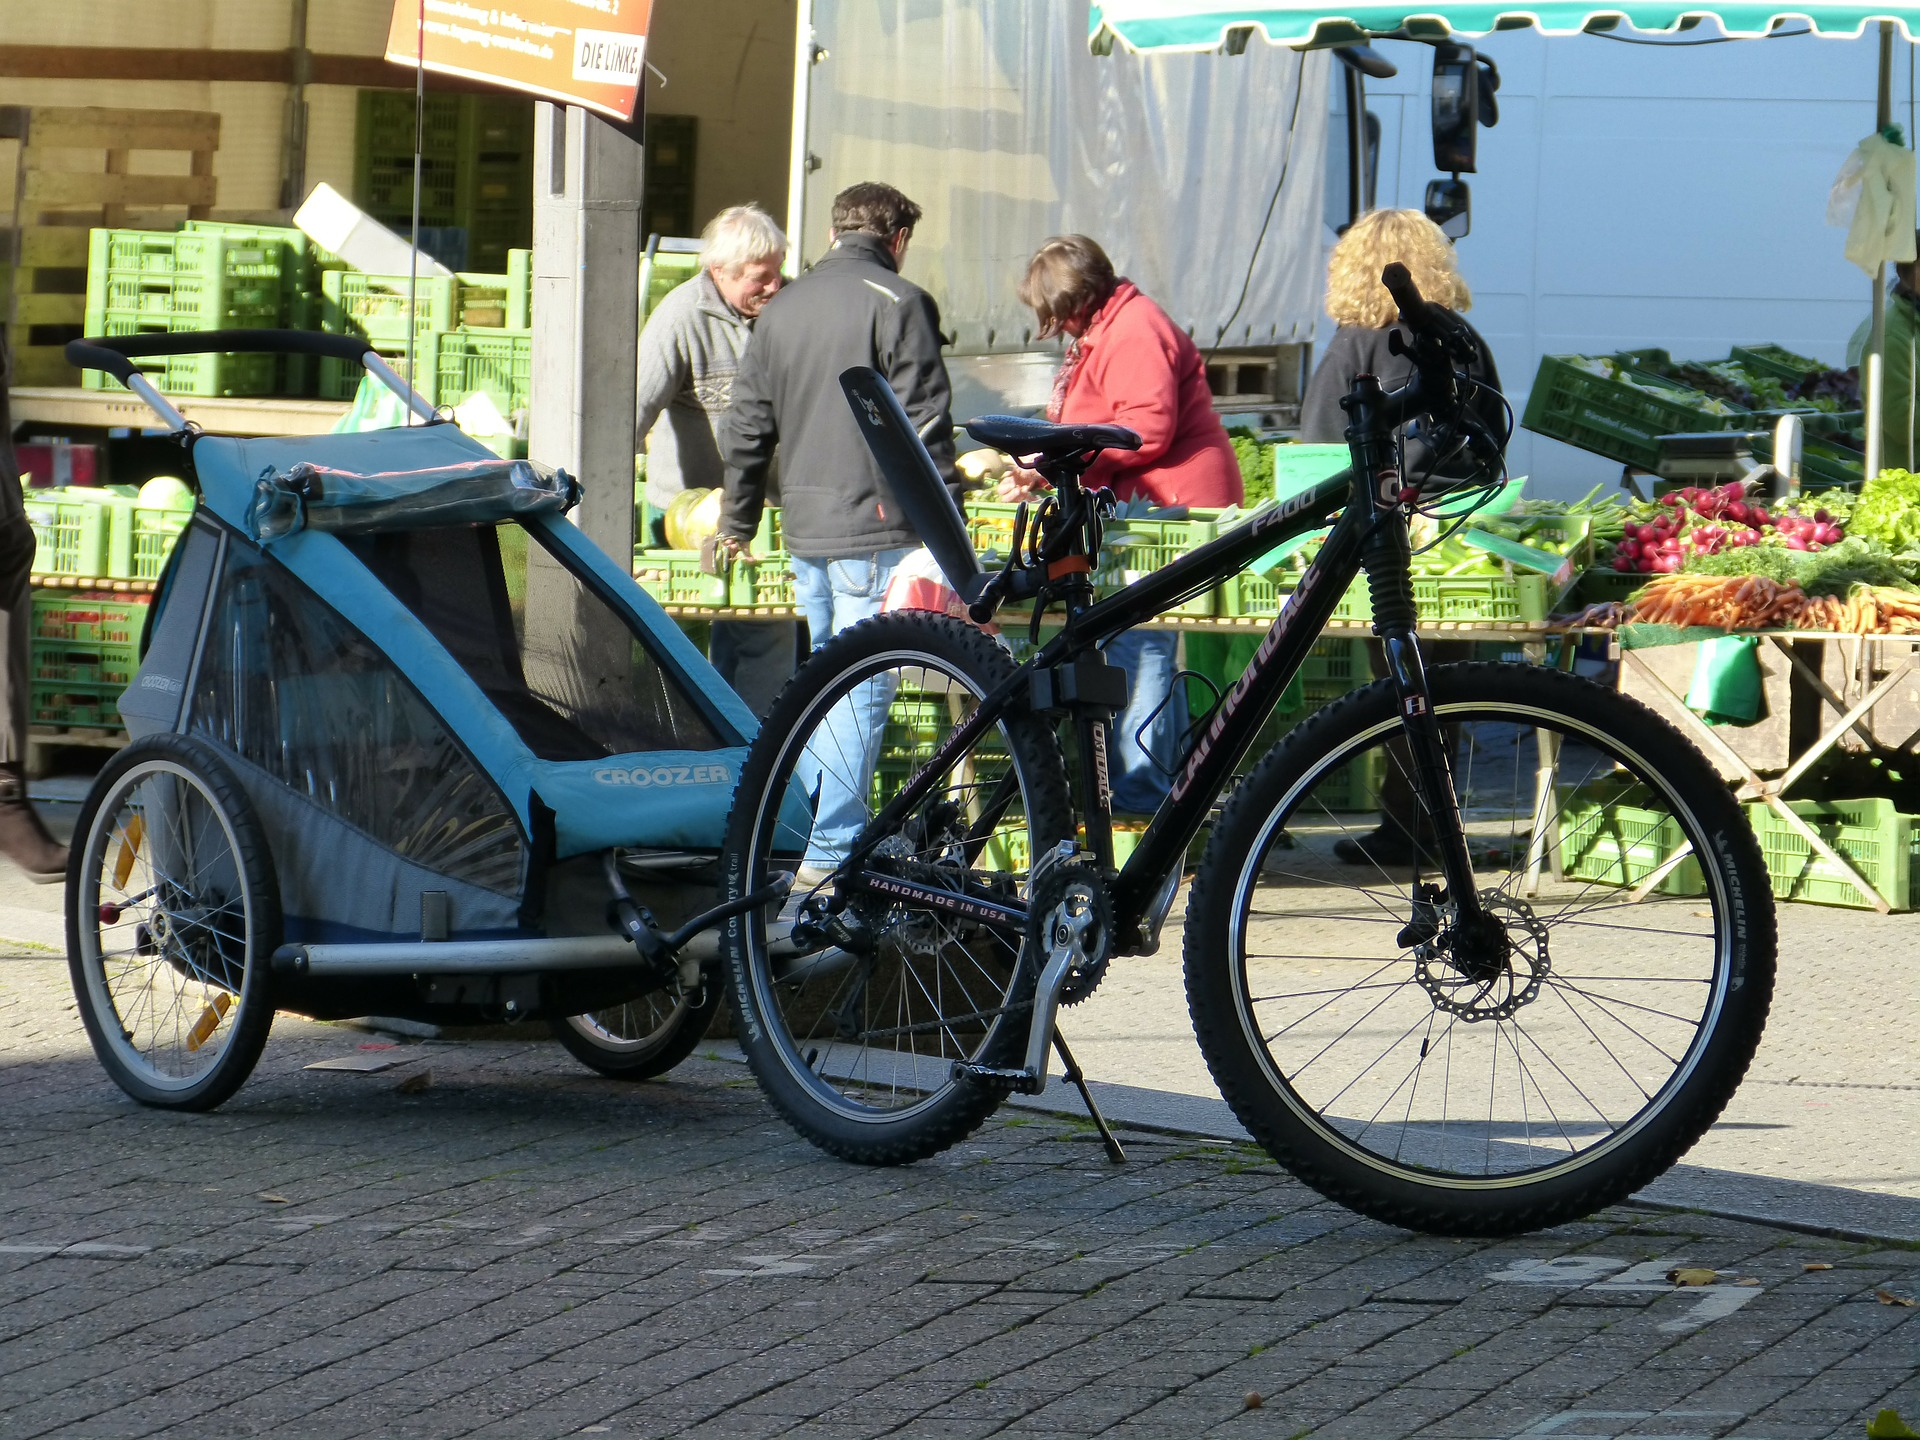 A bike with a trailer attached